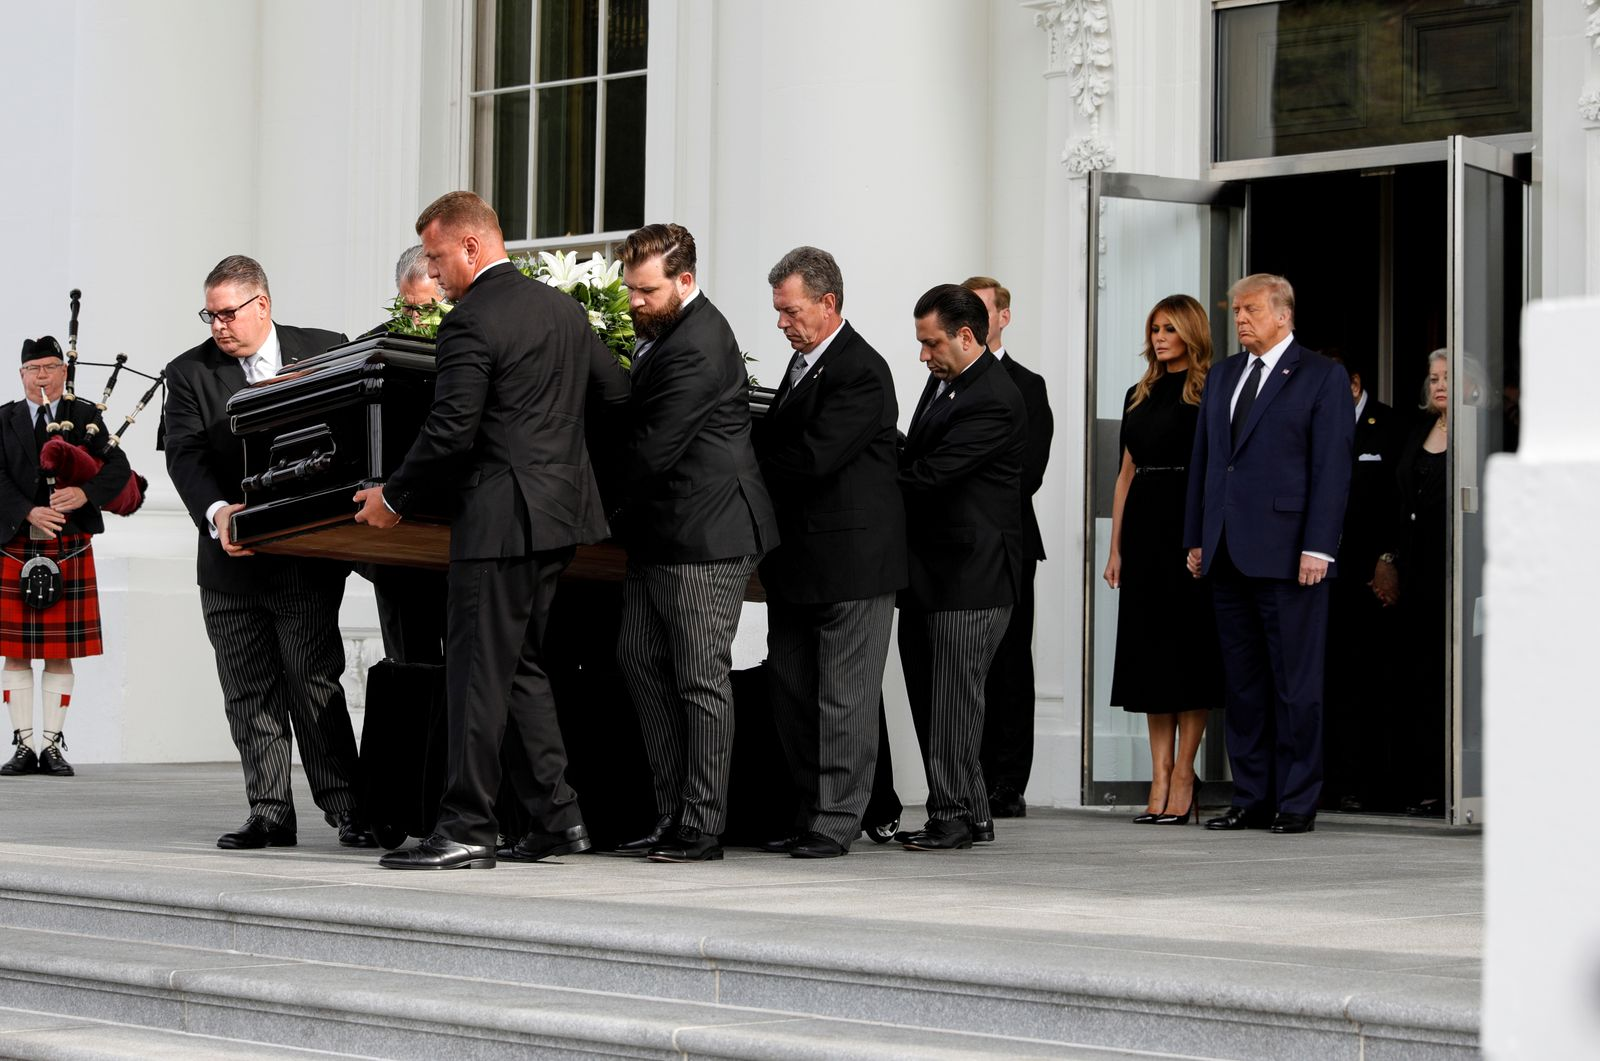 U.S. President Trump attends private memorial service for brother Robert Trump at the White House in Washington